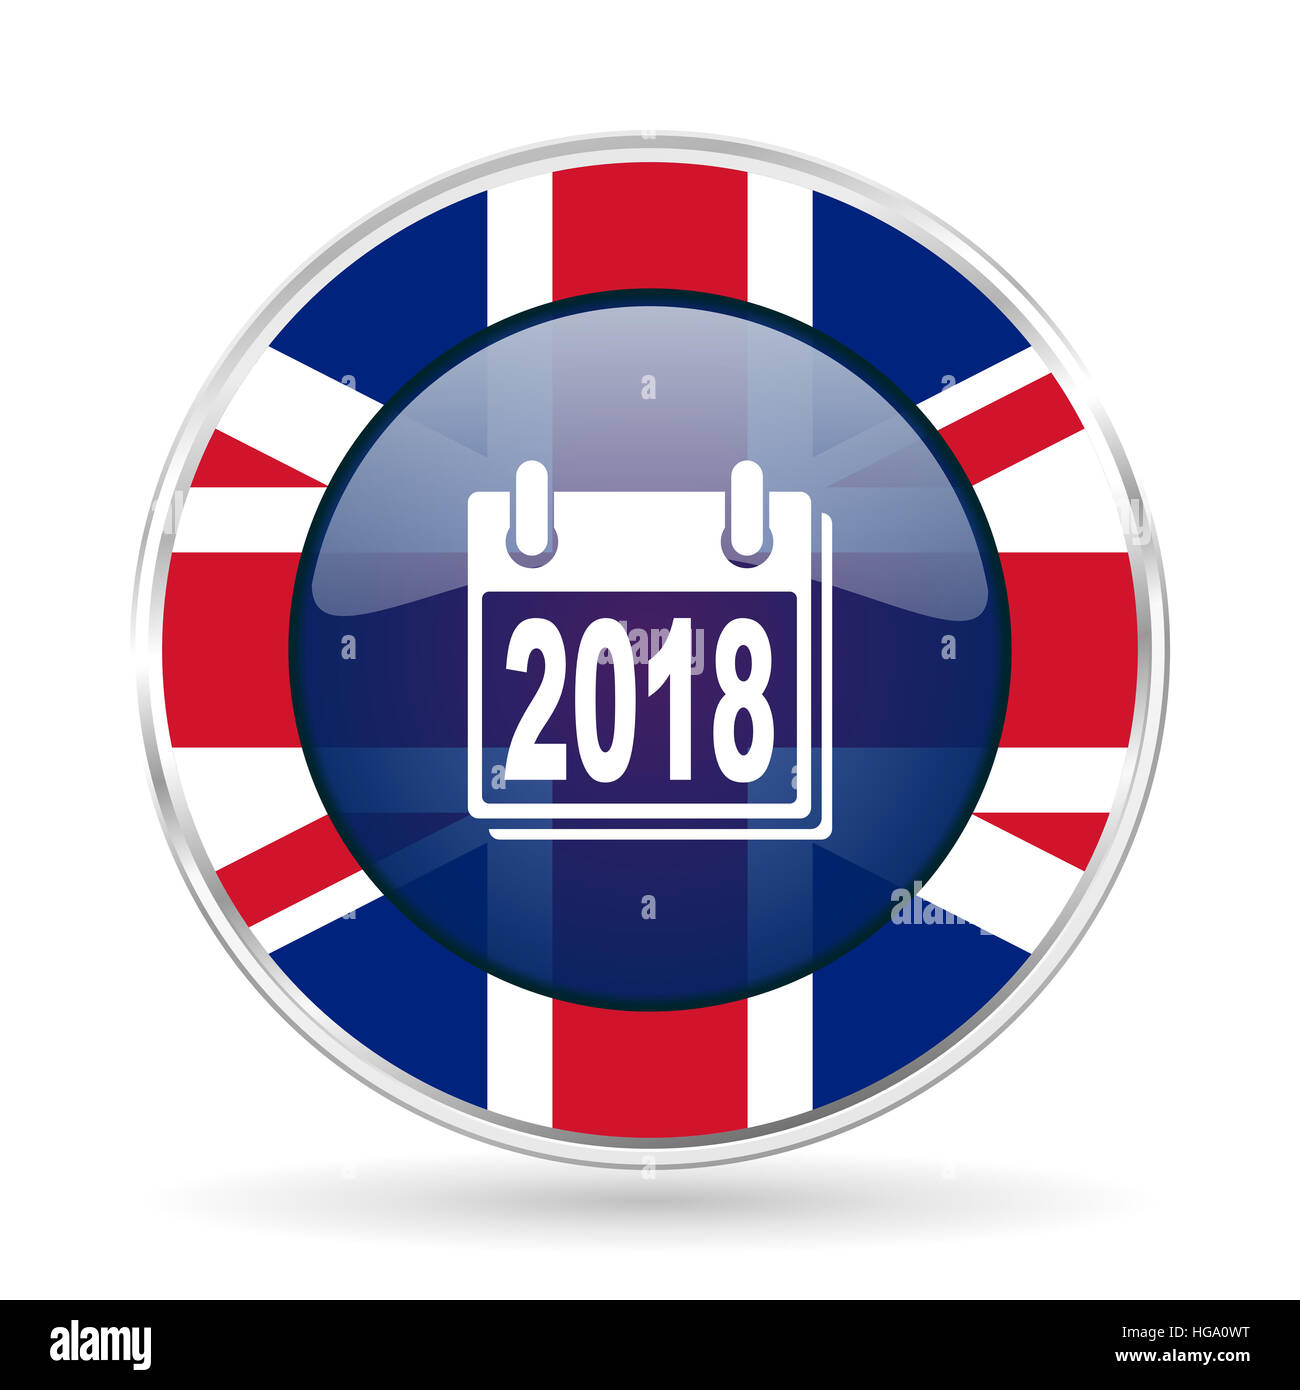 new year 2018 british design icon round silver metallic border button with great britain flag